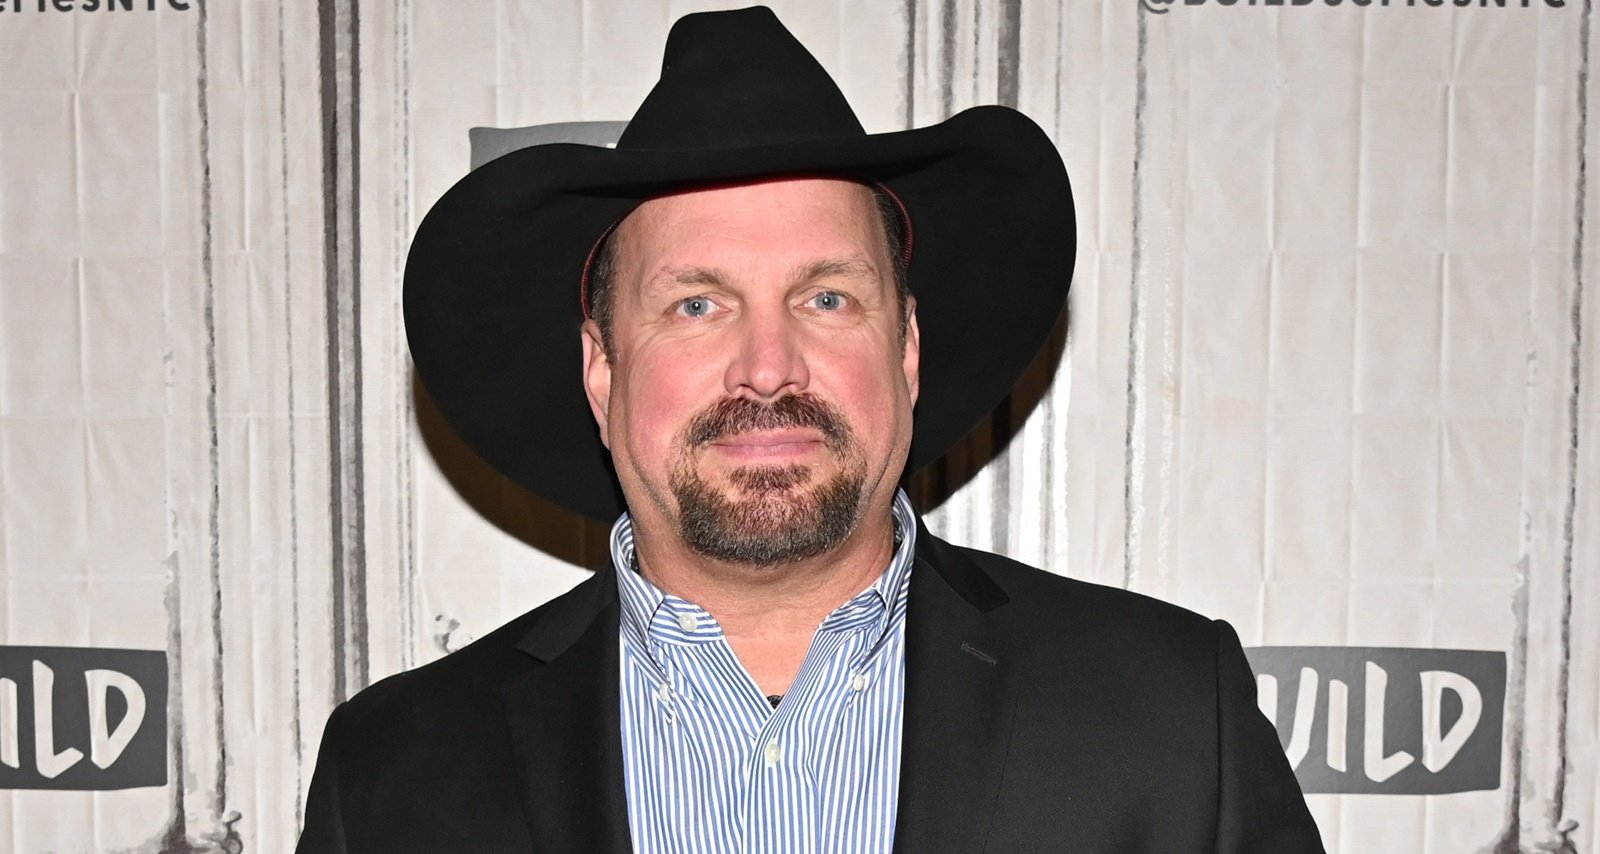 Garth Brooks Net Worth 2019: How Rich Is the Country Megastar?